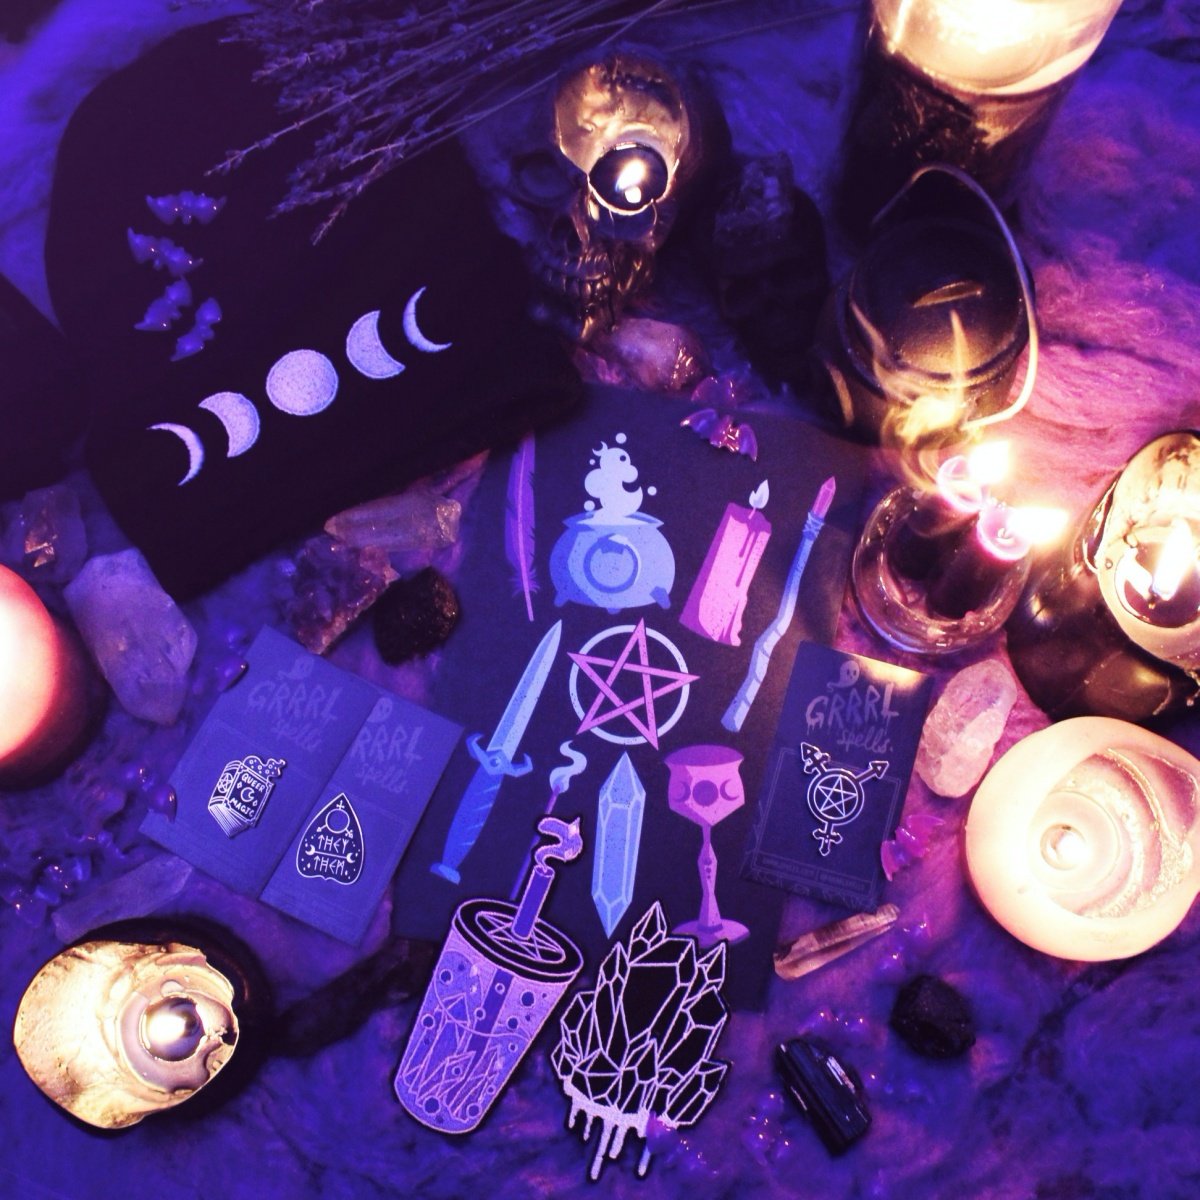 Various sinister objects are sitting on a table in the frame. Candles, itmes decorated with full moons, knives and 5 pointed stars etc. The lighting is dark and spooky